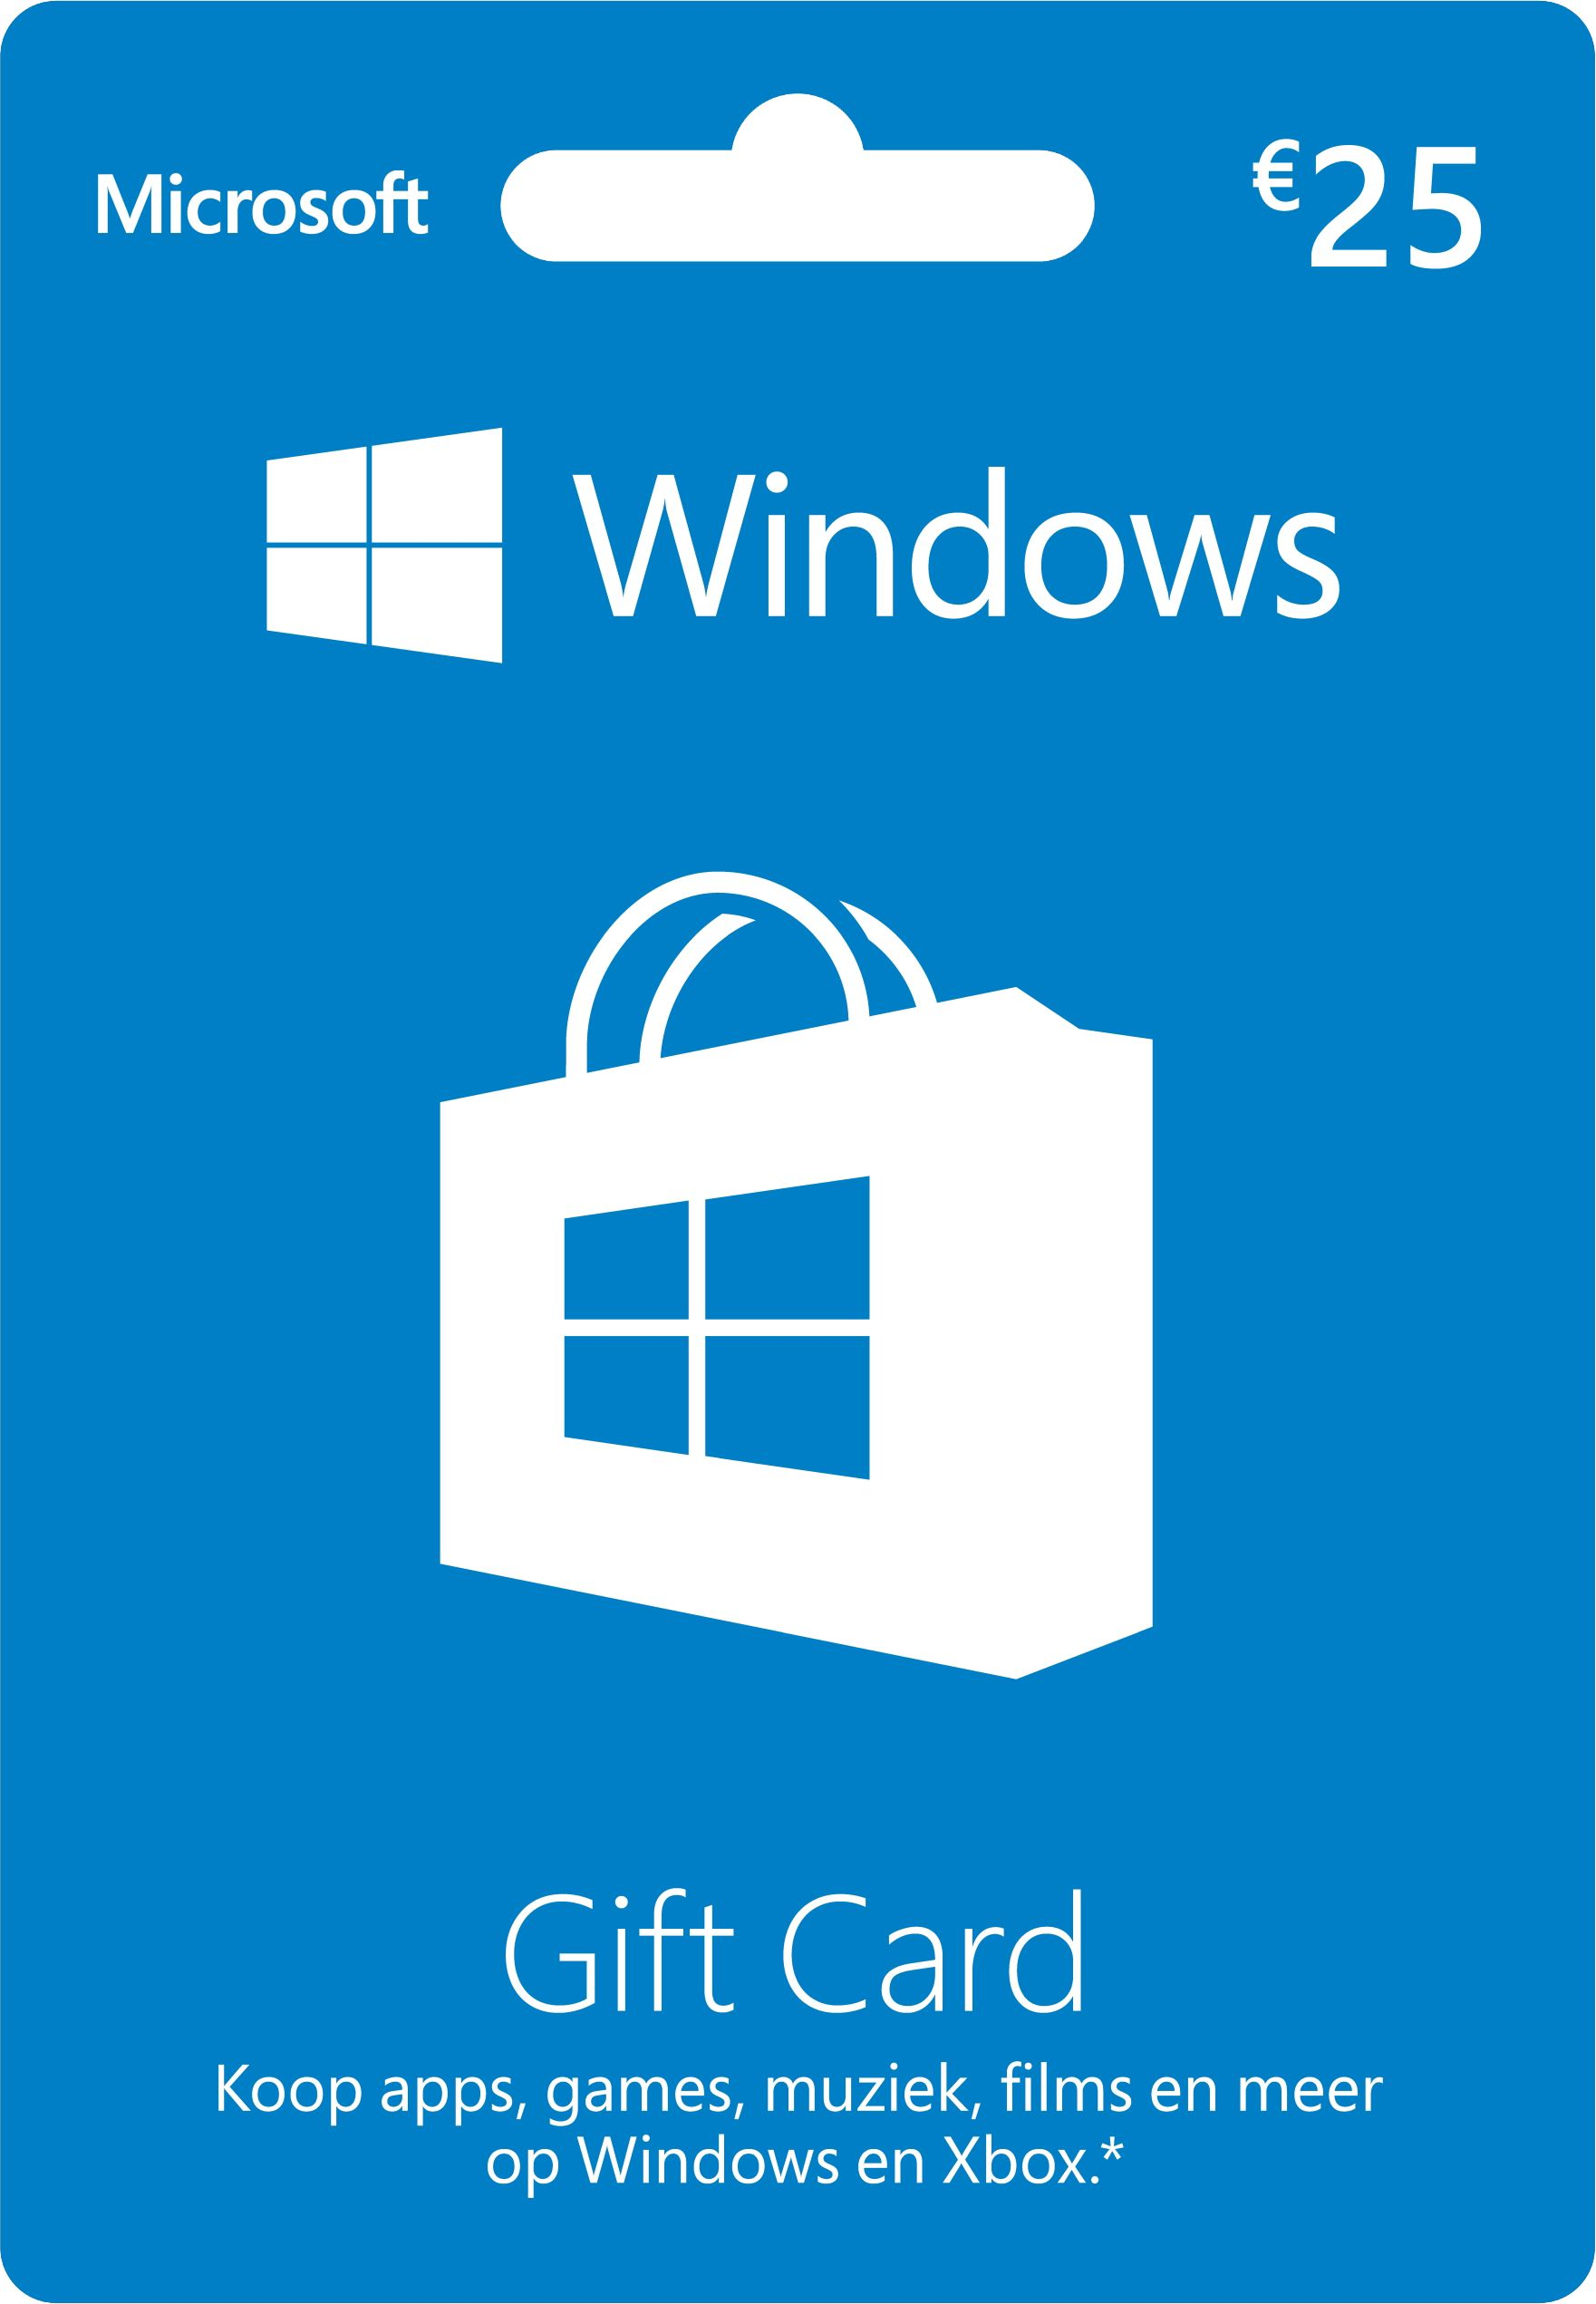 Windows Gift Card 25 euro